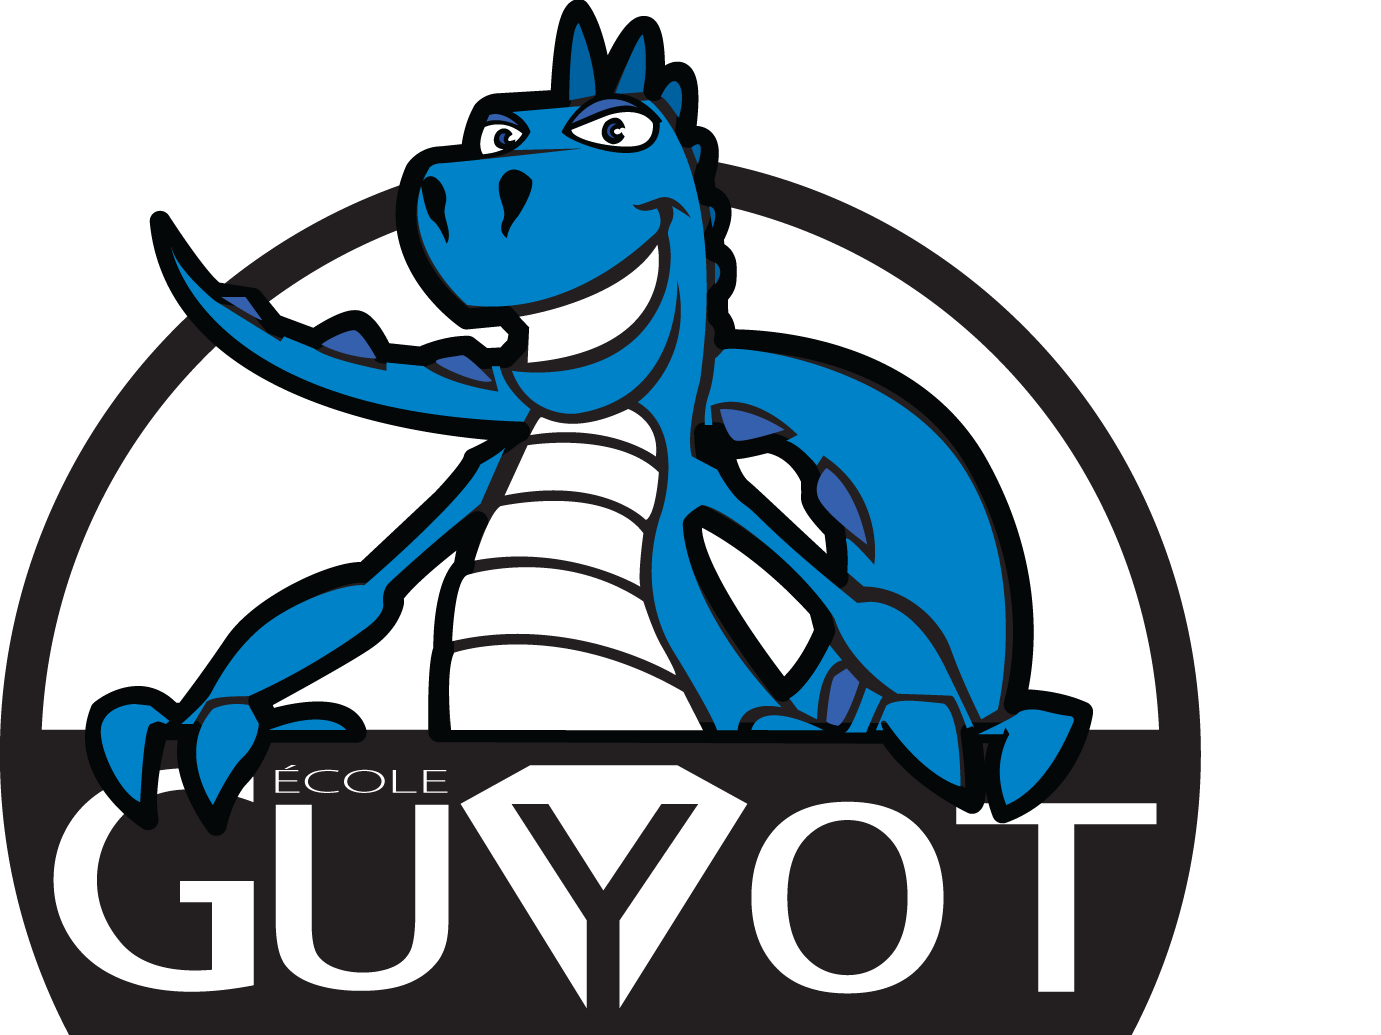 Ecole Guyot Parent Advisory Council